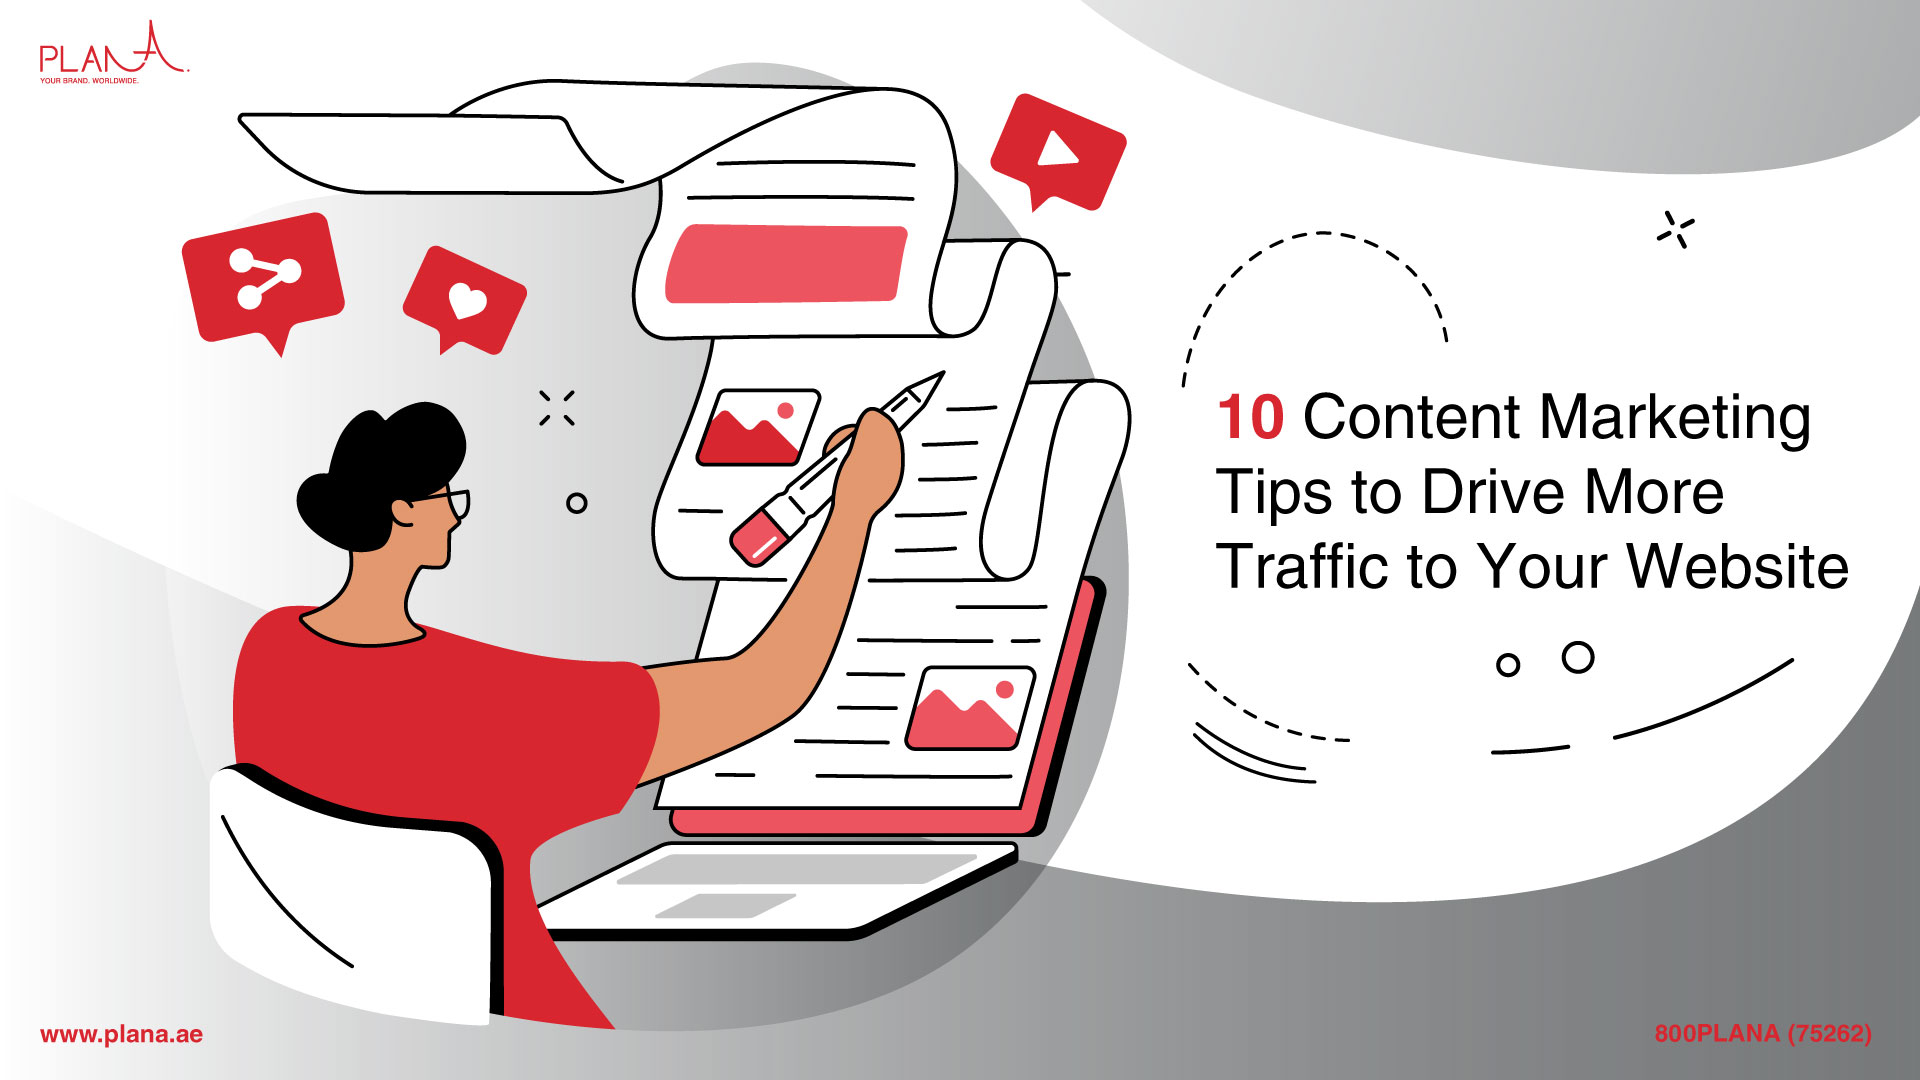 10 Content Marketing Tips to Drive More Traffic to Your Website